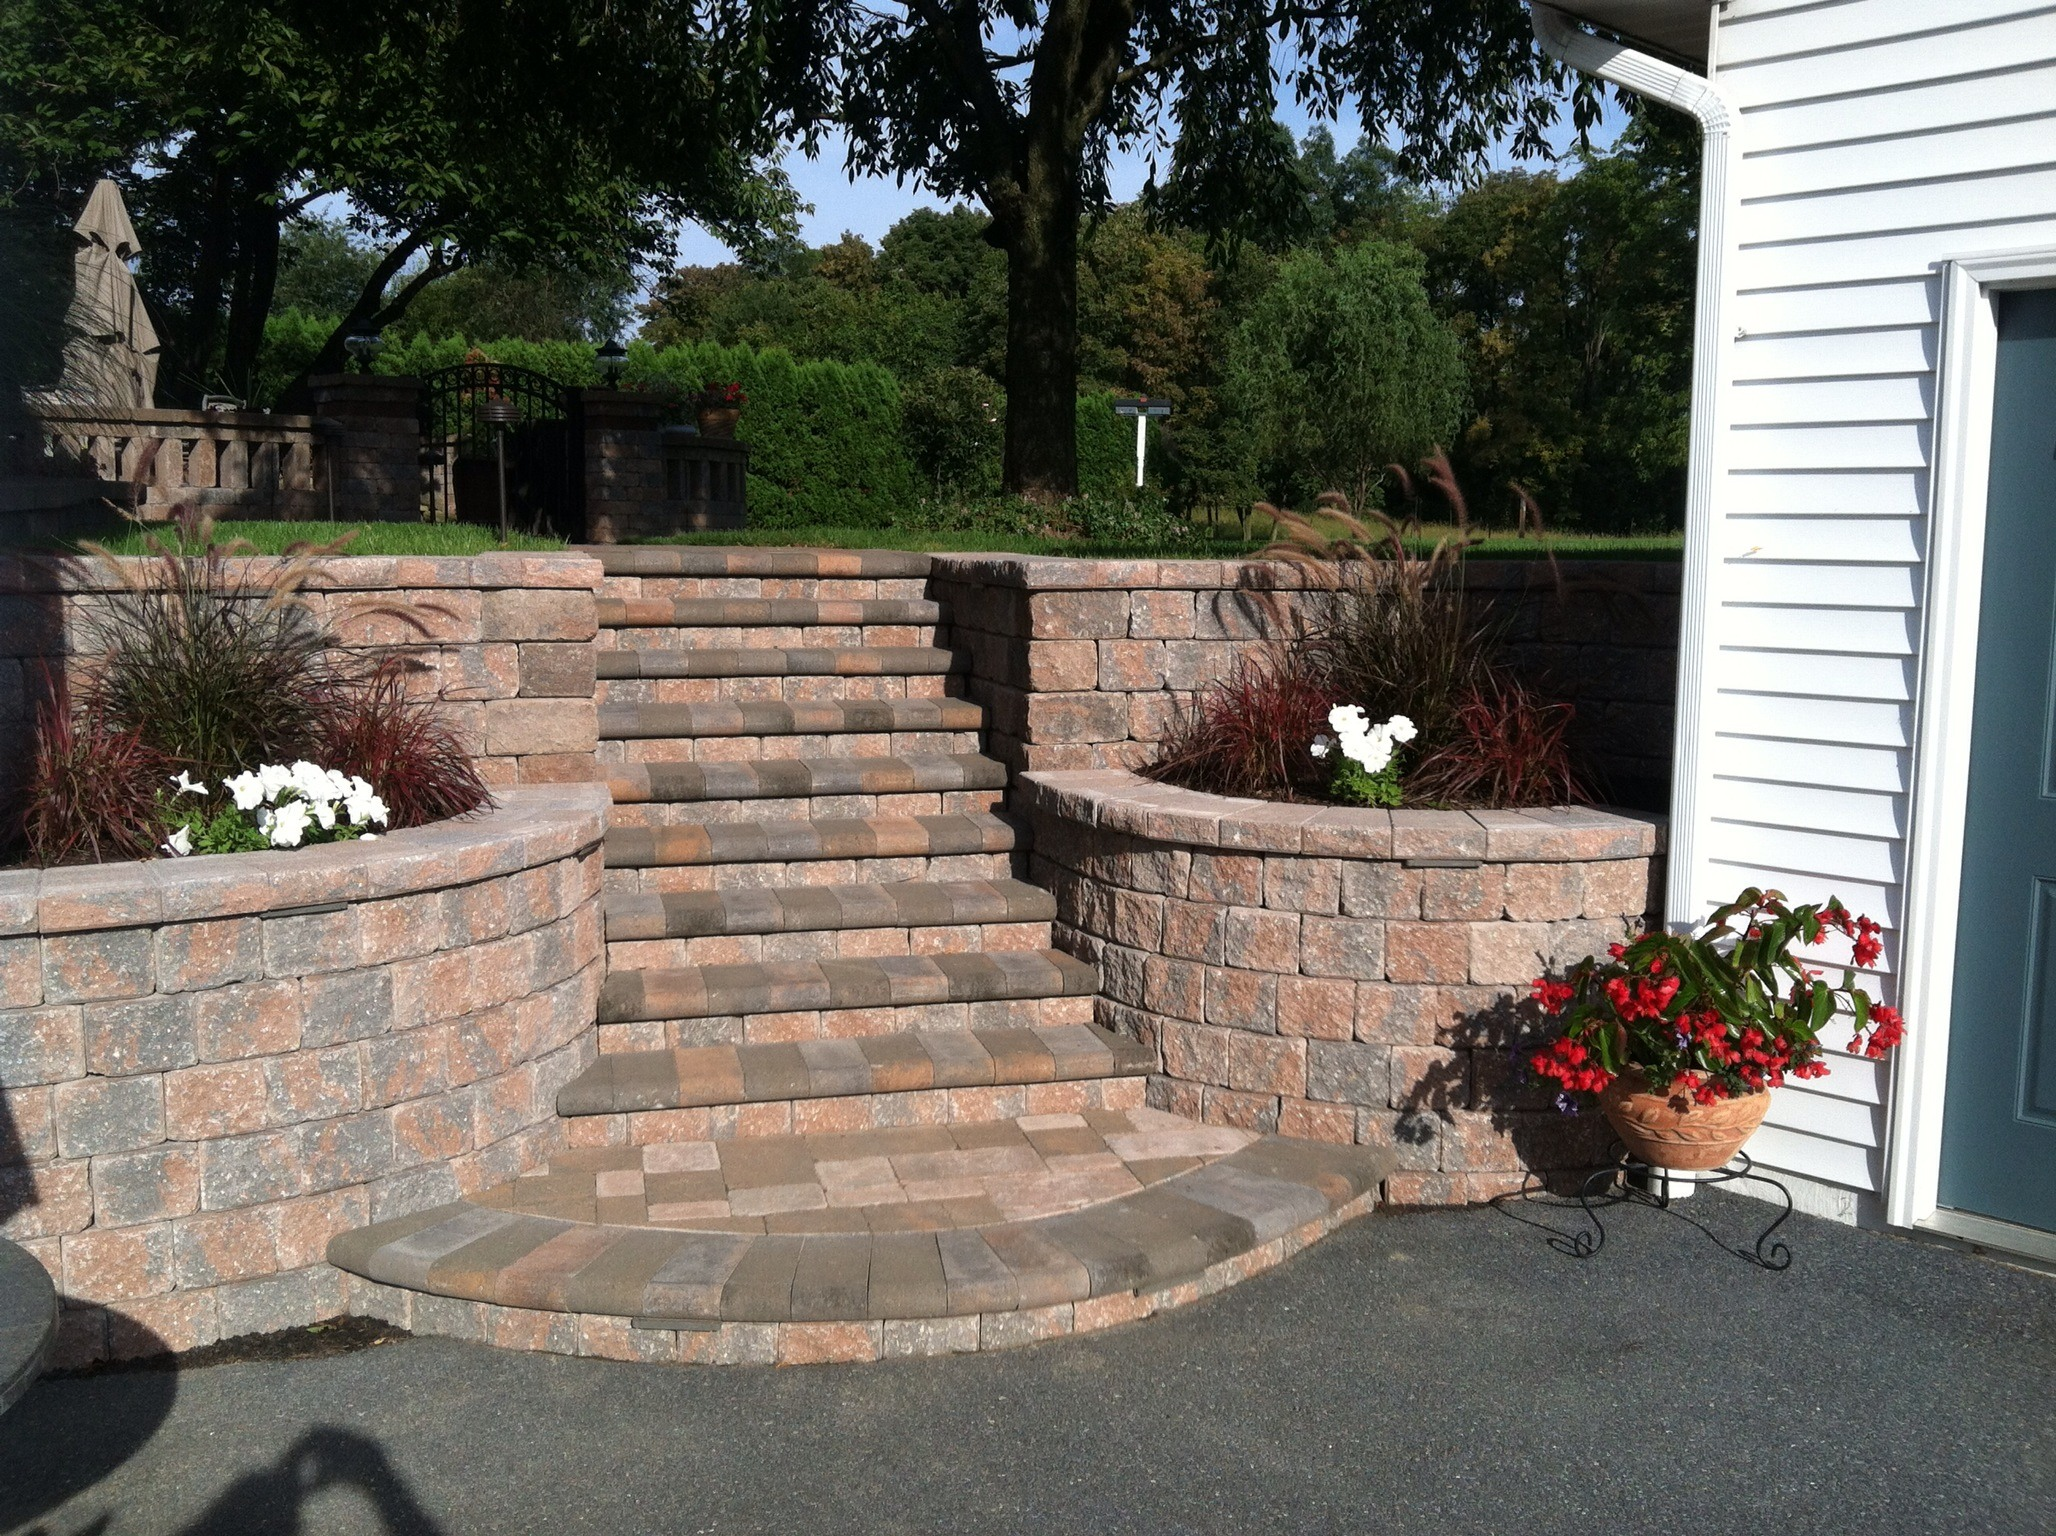 Experienced landscape driveway pavers in Lebanon County, PA